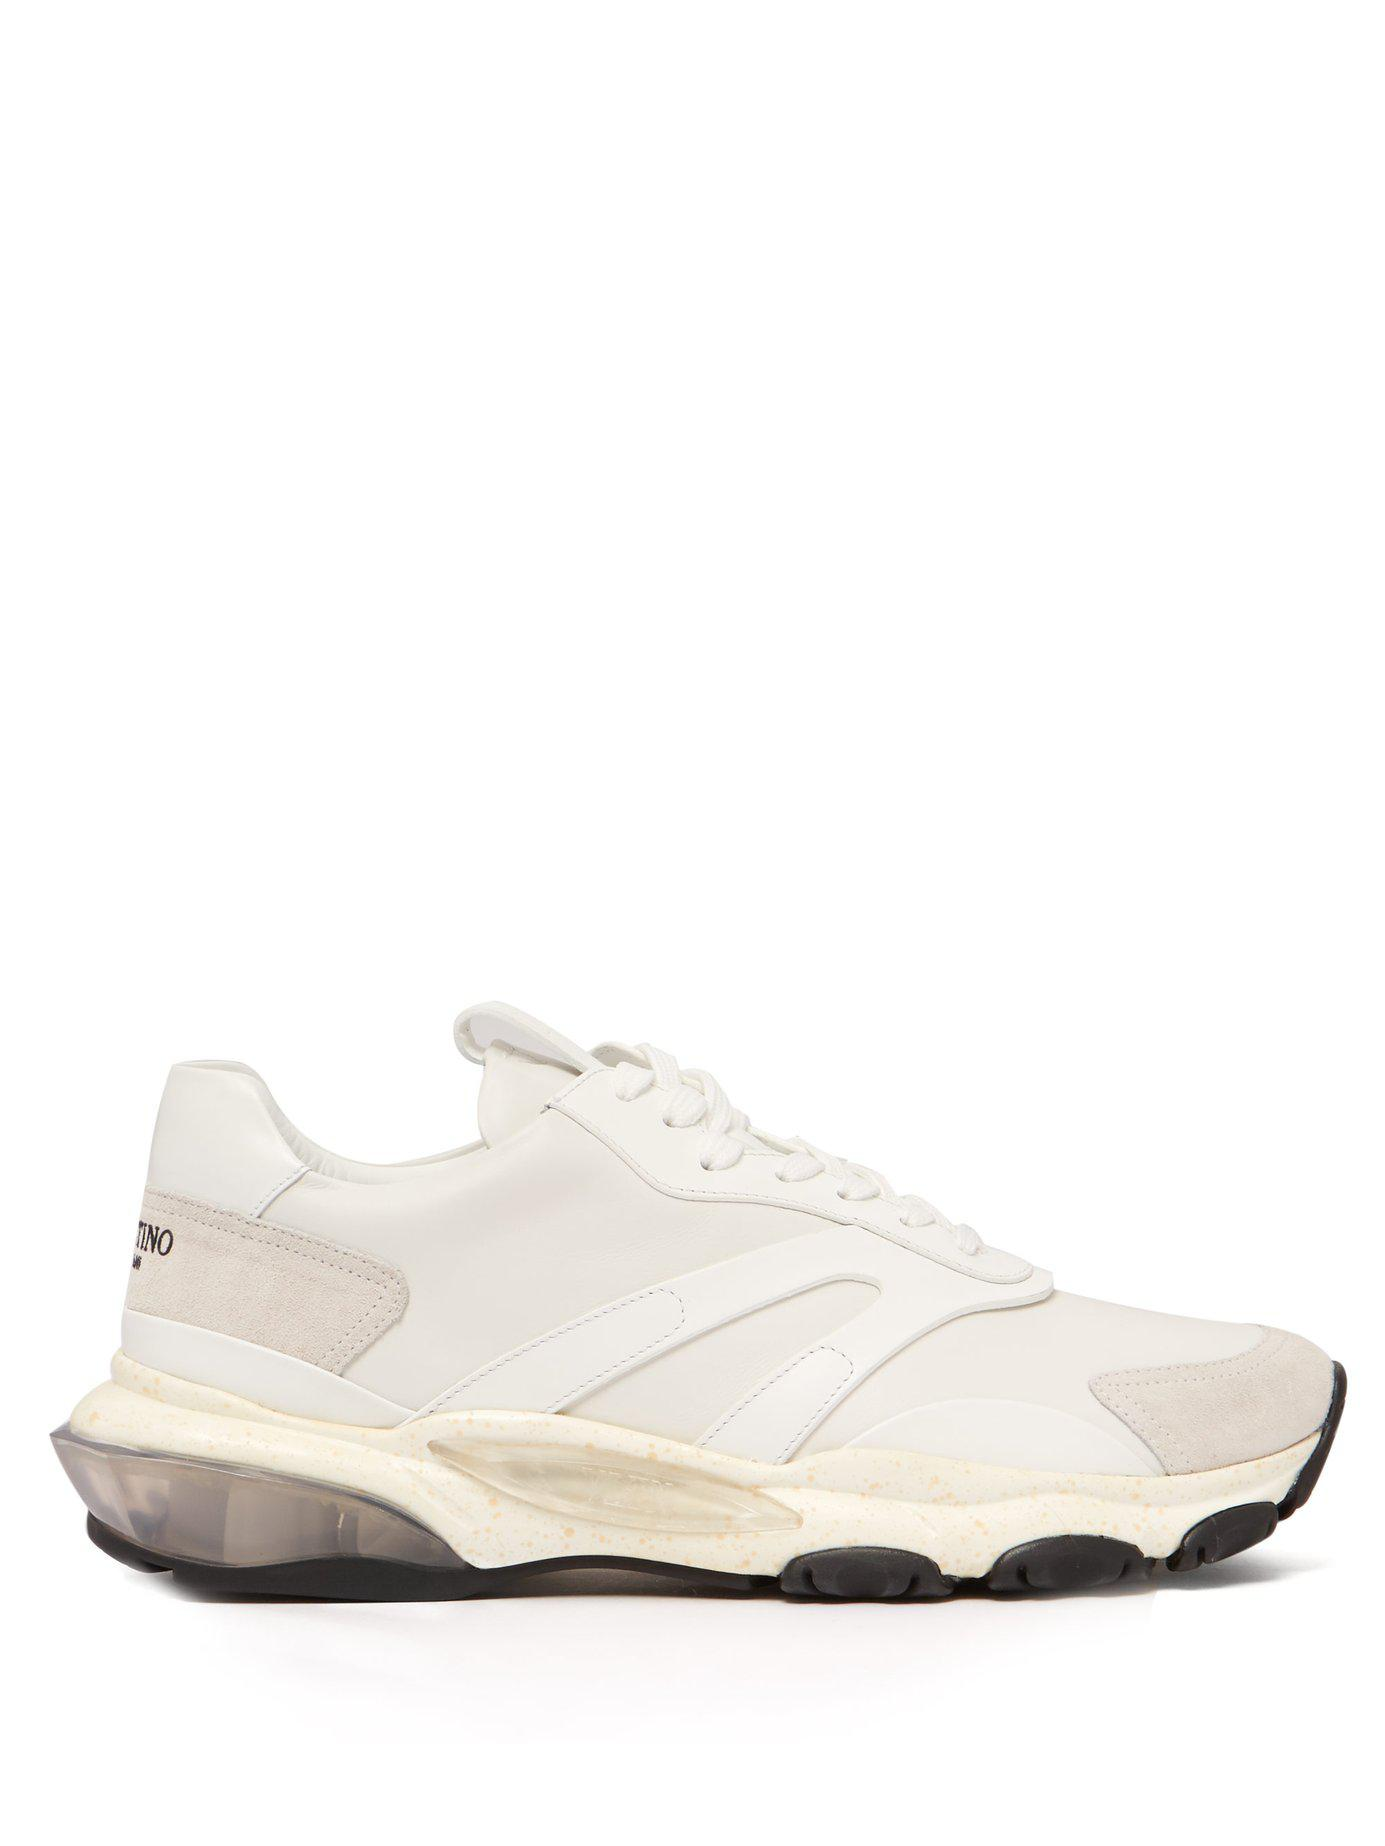 5b3ce3dc4 Lyst - Valentino Bounce Raised Sole Low Top Trainers in White for Men